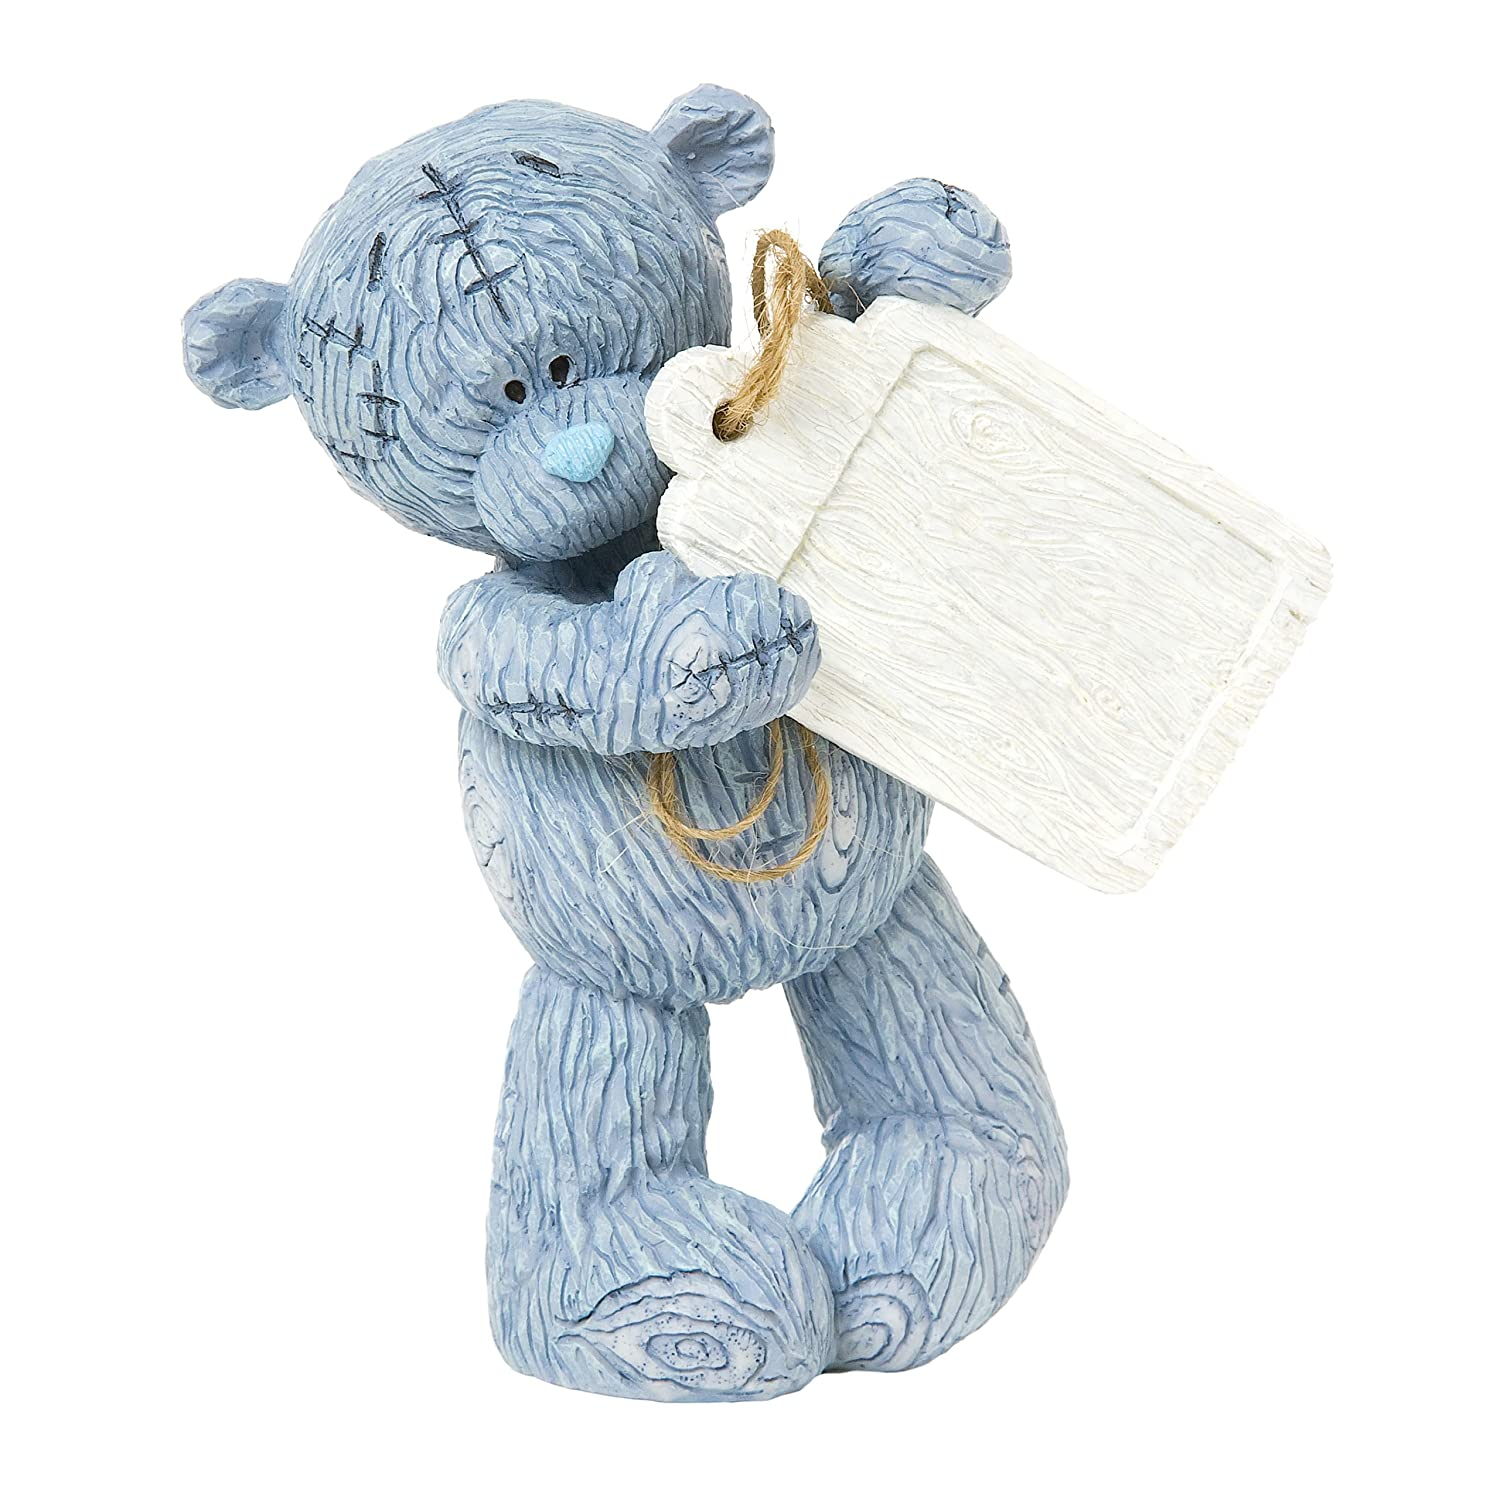 TATTY TEDDY BEAR FIGURINE LASTING IMPRESSION HOLDING GIFT PRESENT COLLECTABLE